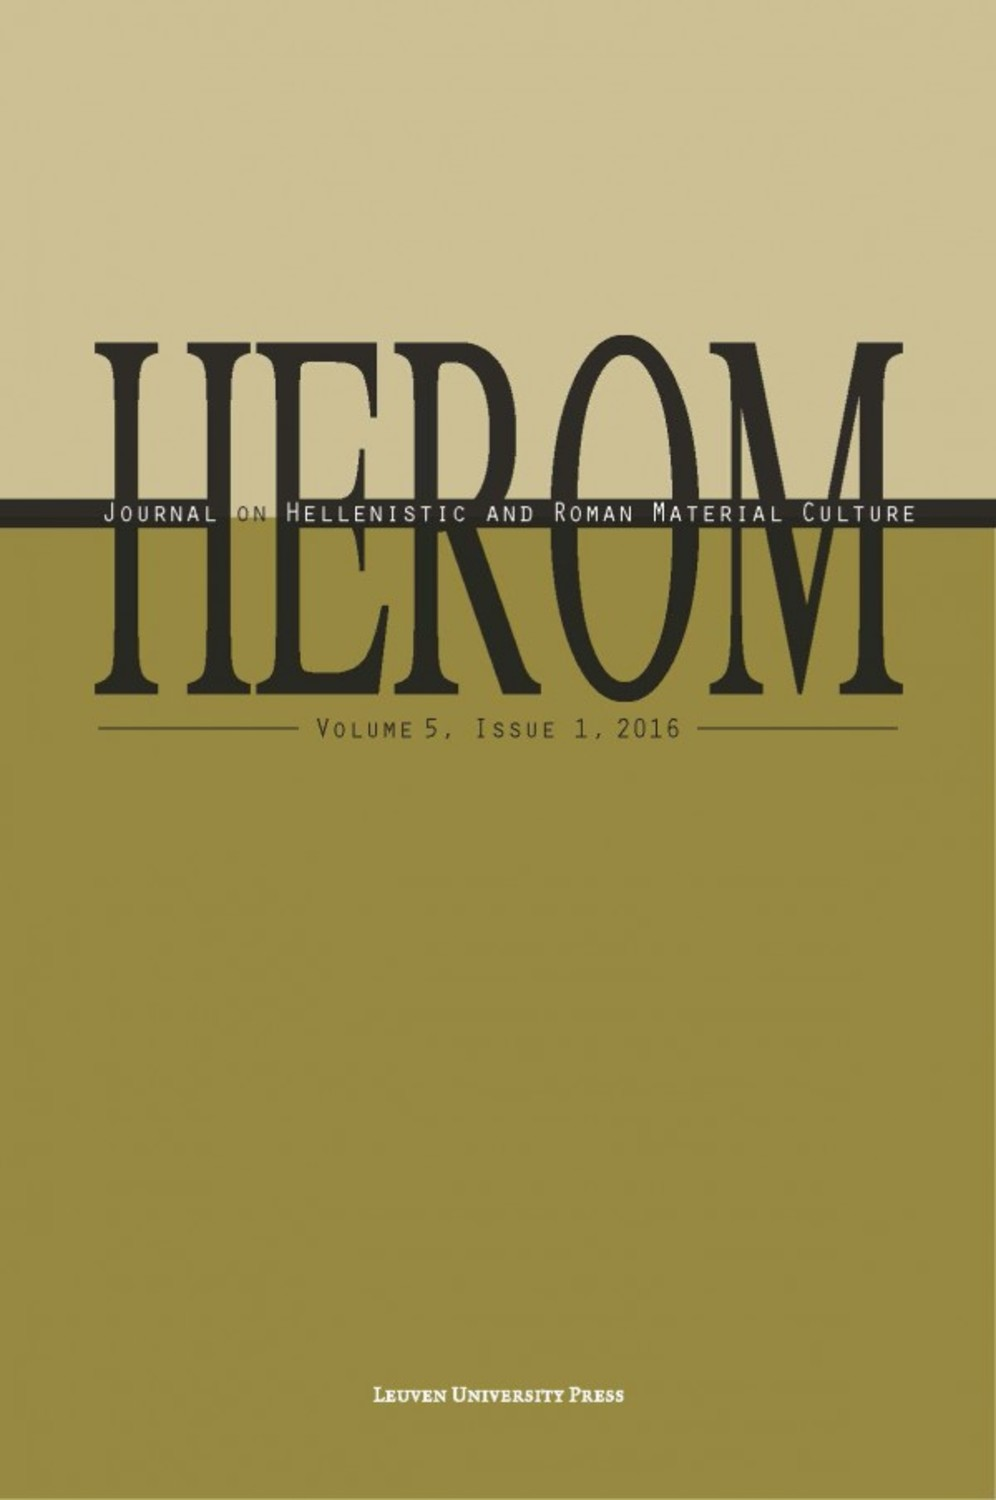 HEROM Volume 5 Issue 1, 2016 (Journal Subscription)